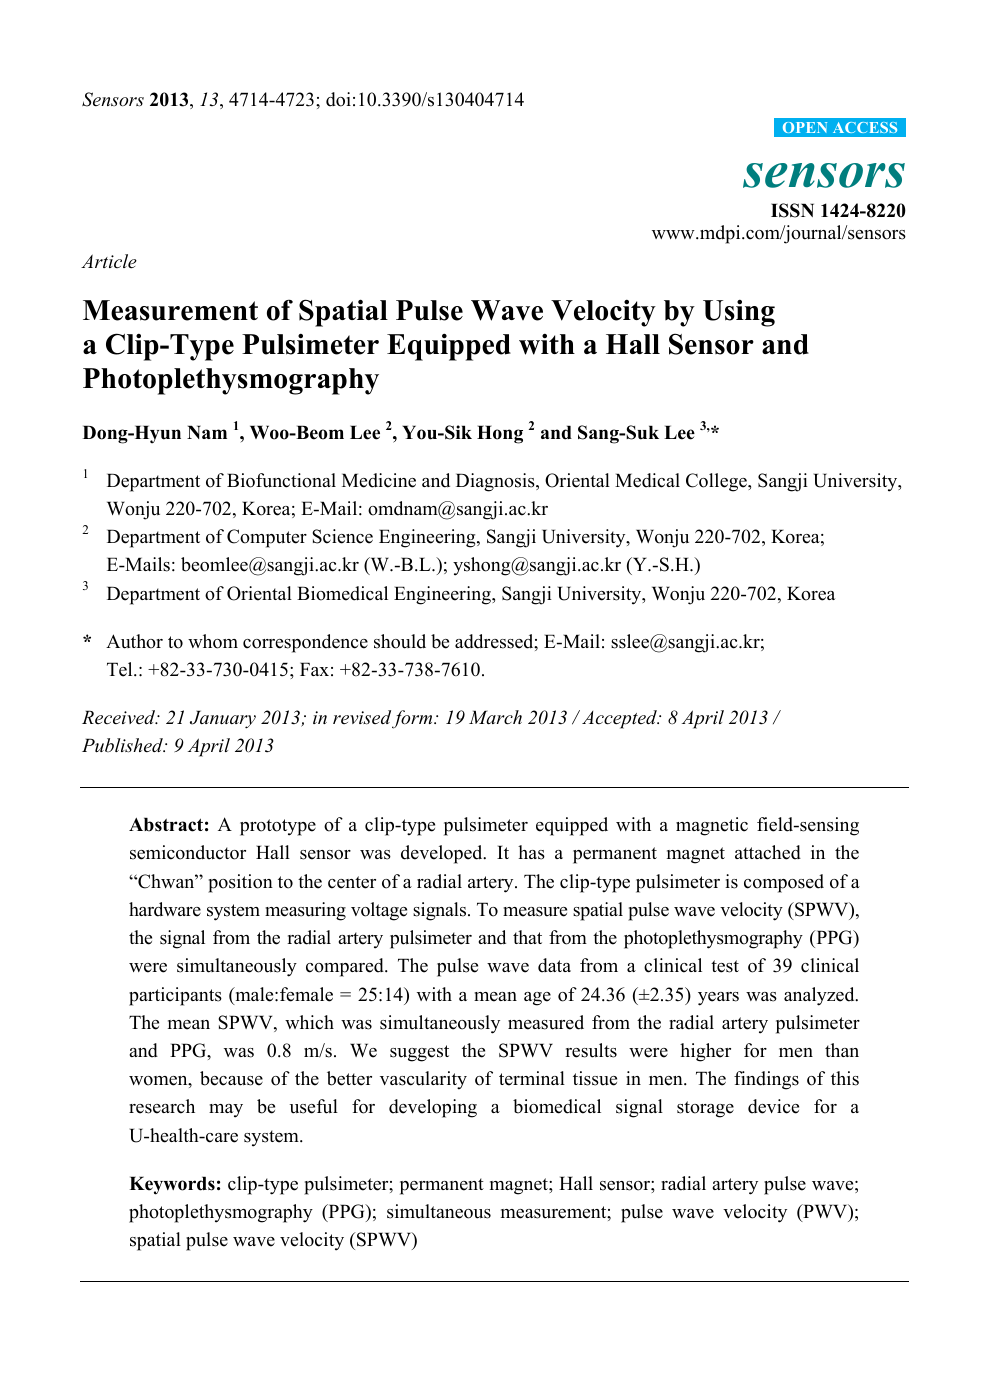 Measurement of Spatial Pulse Wave Velocity by Using a Clip-Type